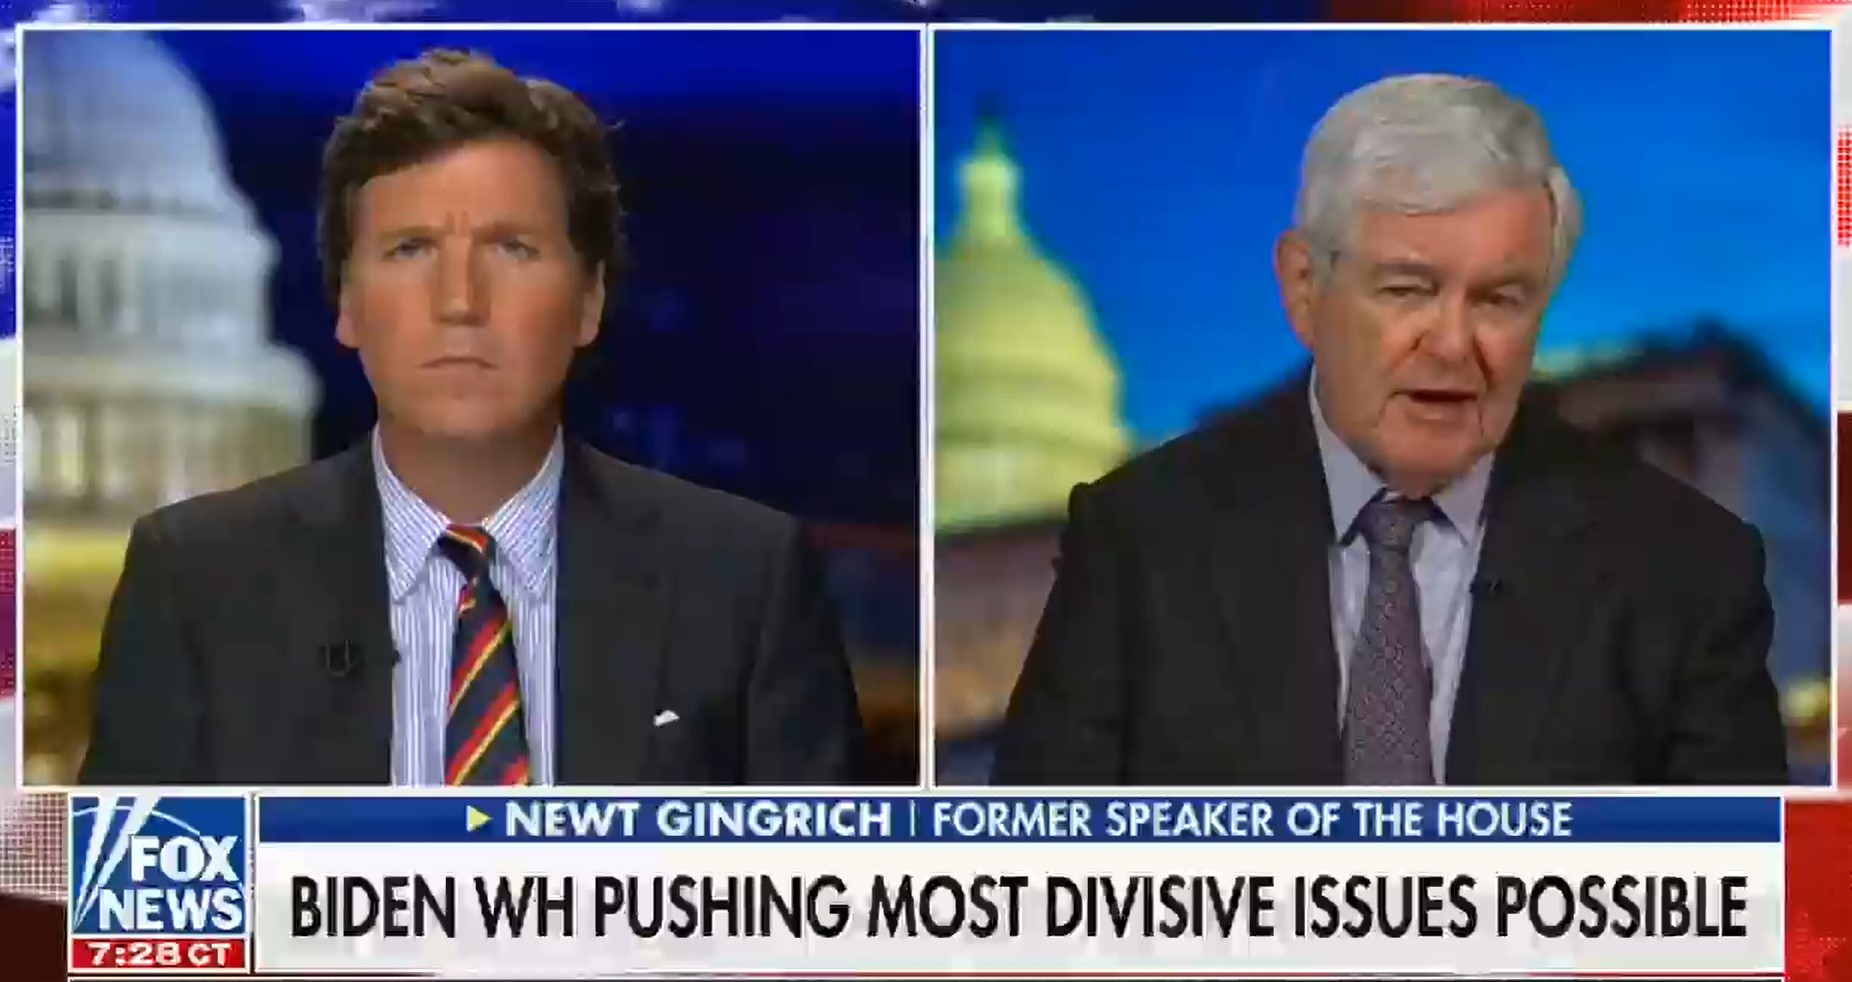 Fox News has aired 86 mostly negative segments on trans rights since Biden took office